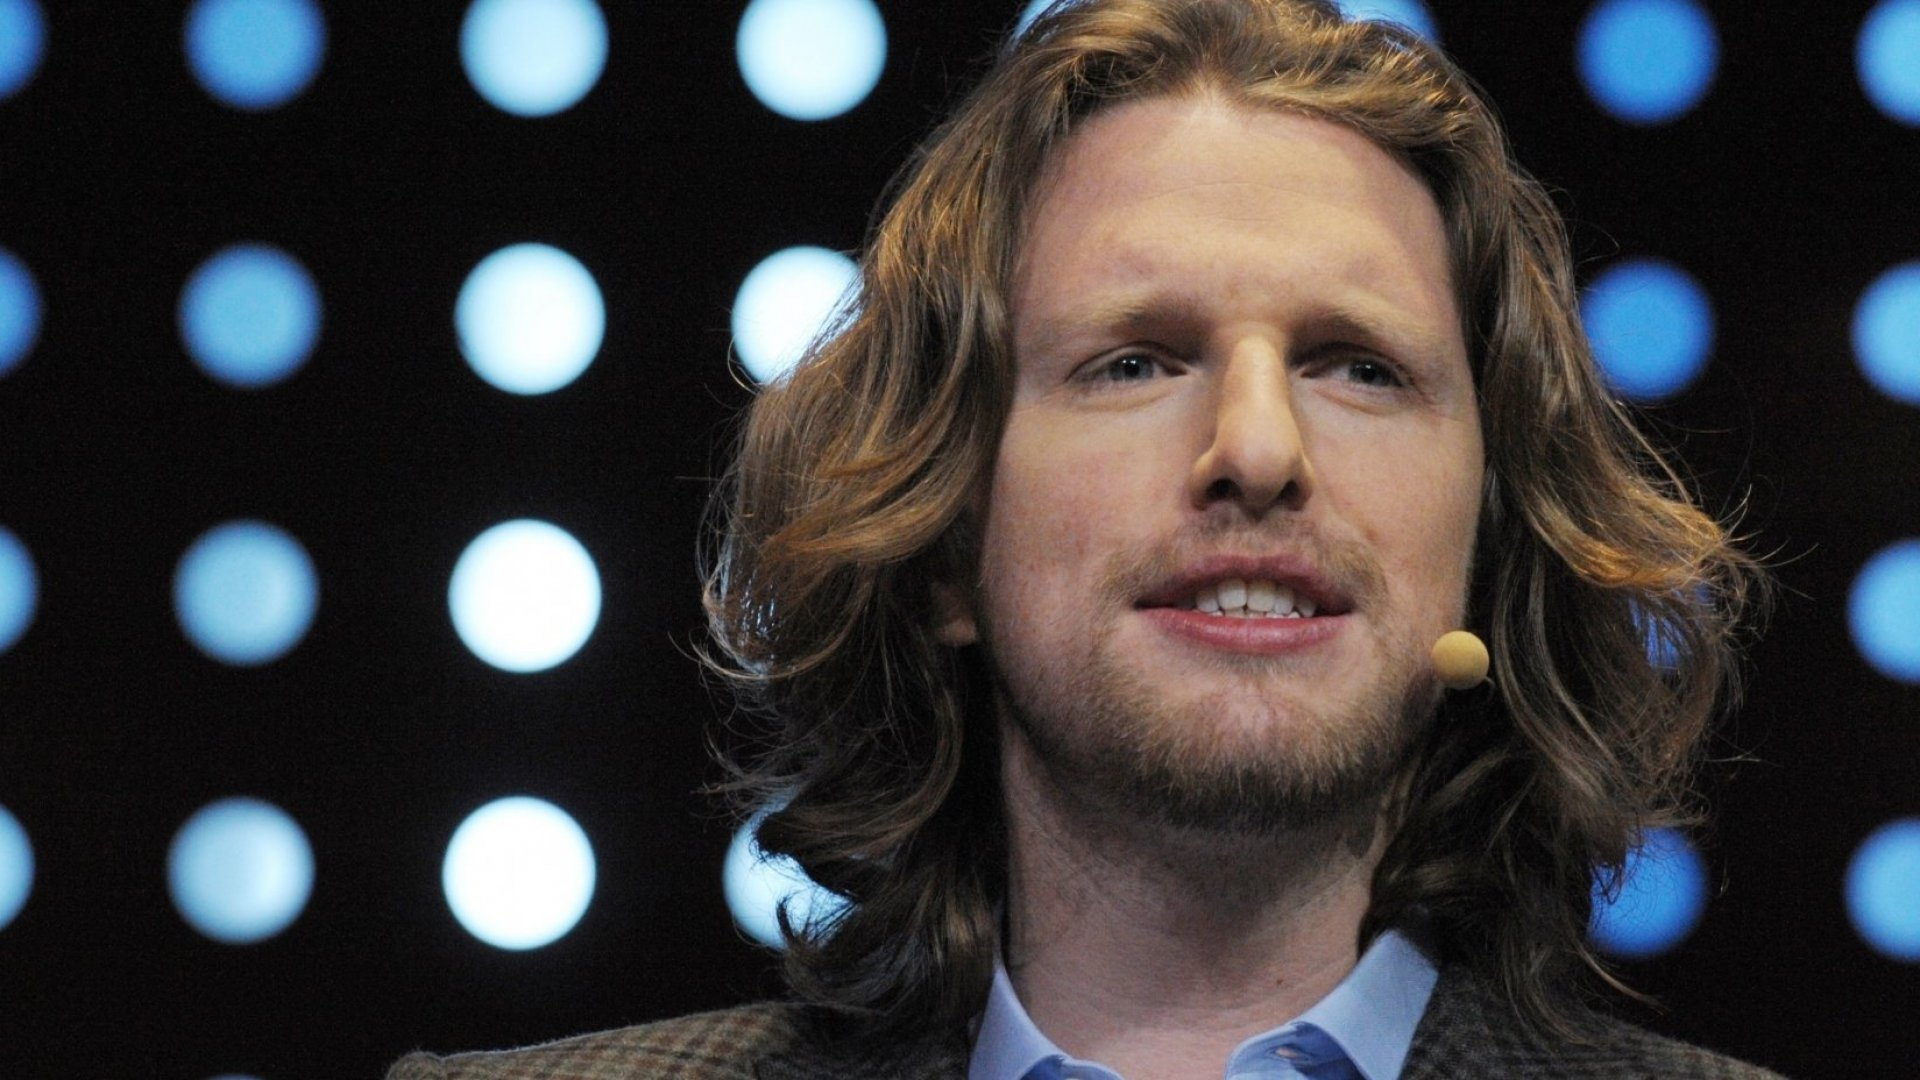 Matt Mullenweg, CEO of Automattic, the parent company of WordPress.